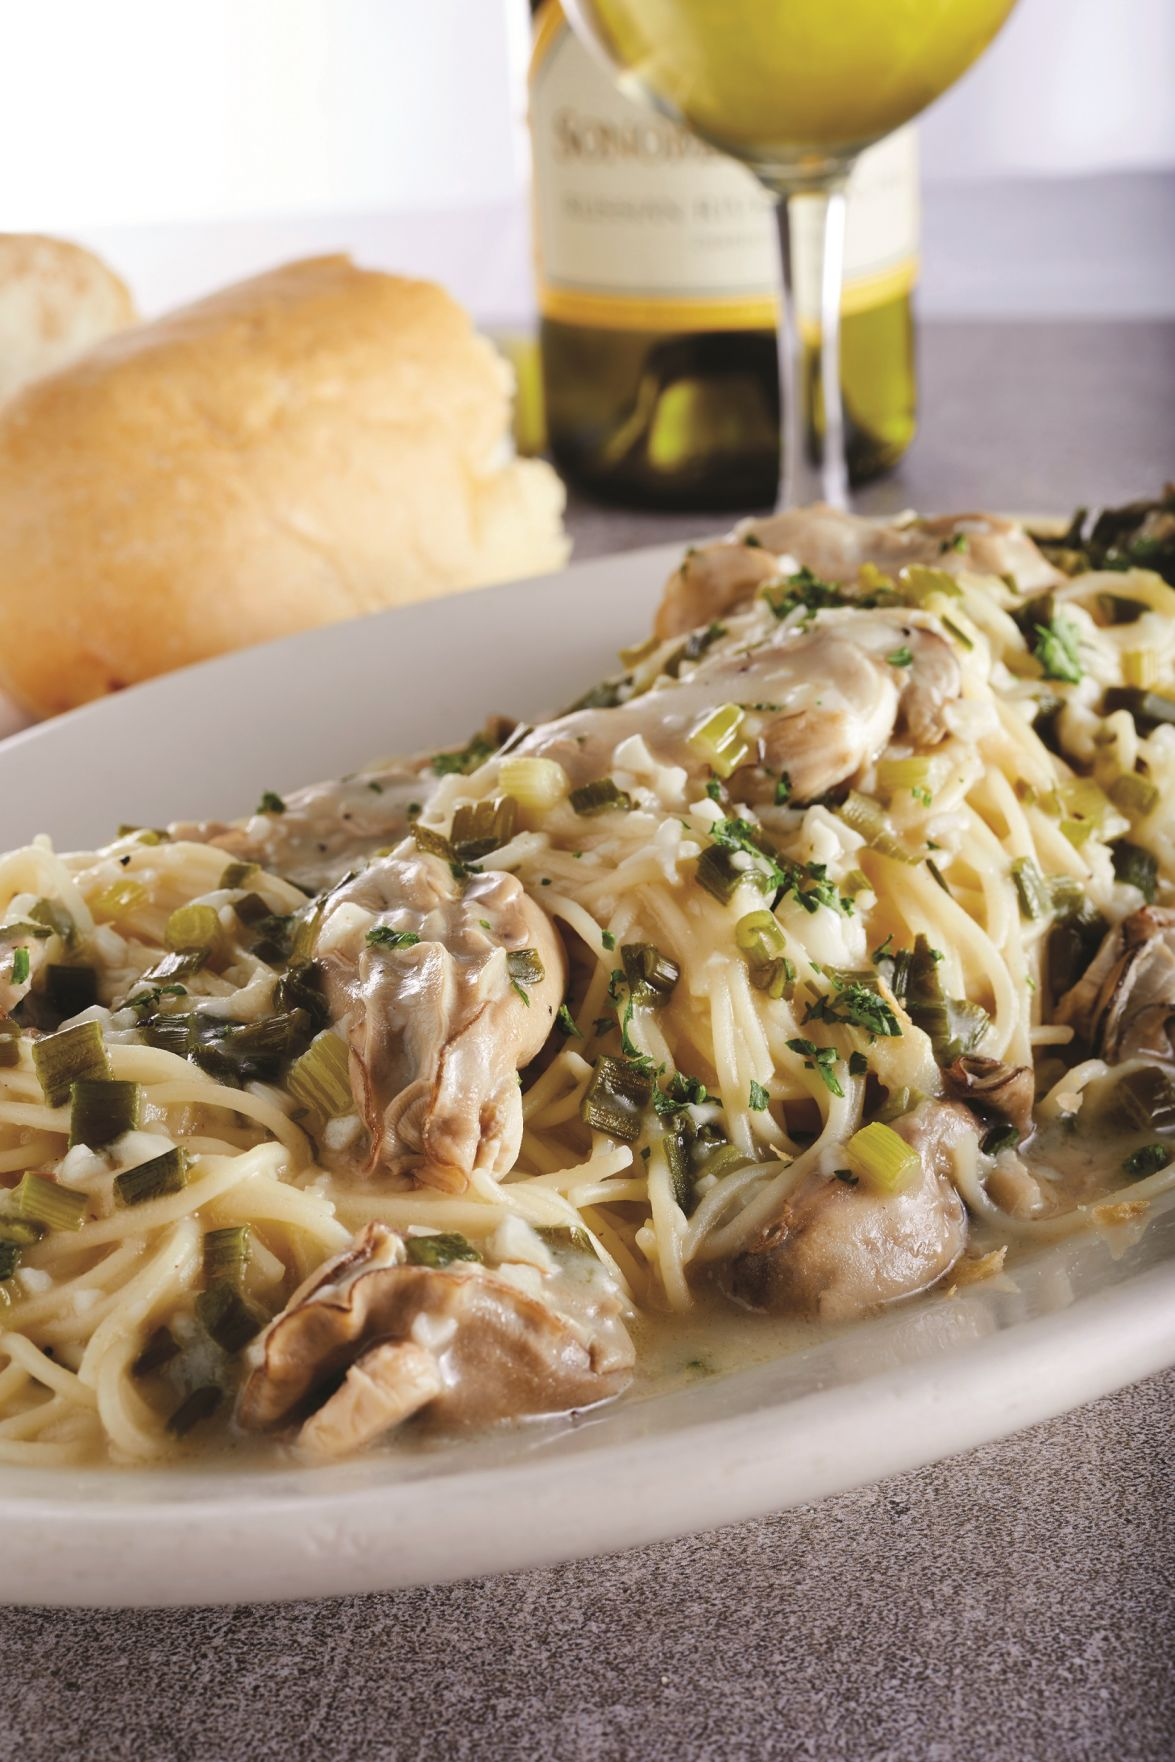 Judy Walker: Recipes for Eggplant Dryades, Oysters and Spaghetti ...